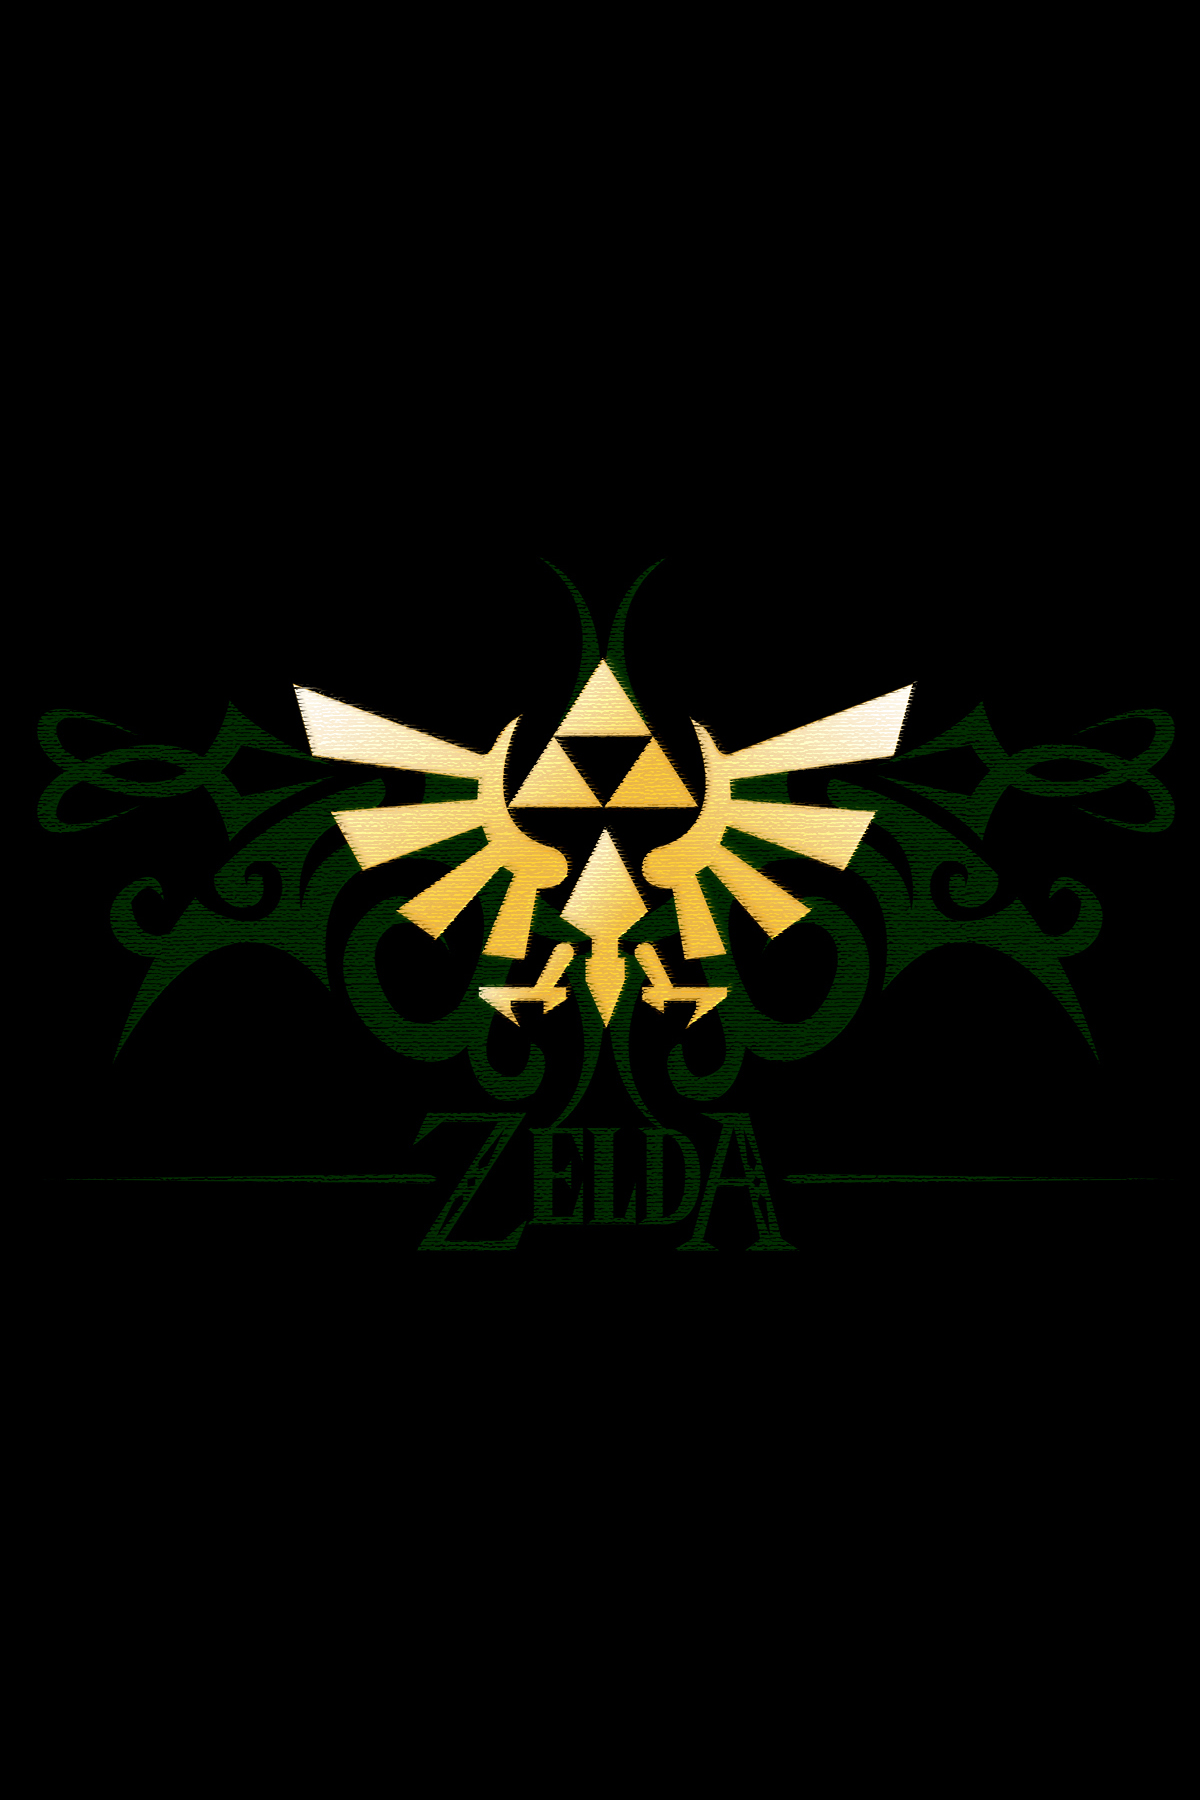 zelda symbol 2 android wallpaper download your screen size 1024 x 1024 recommended download original